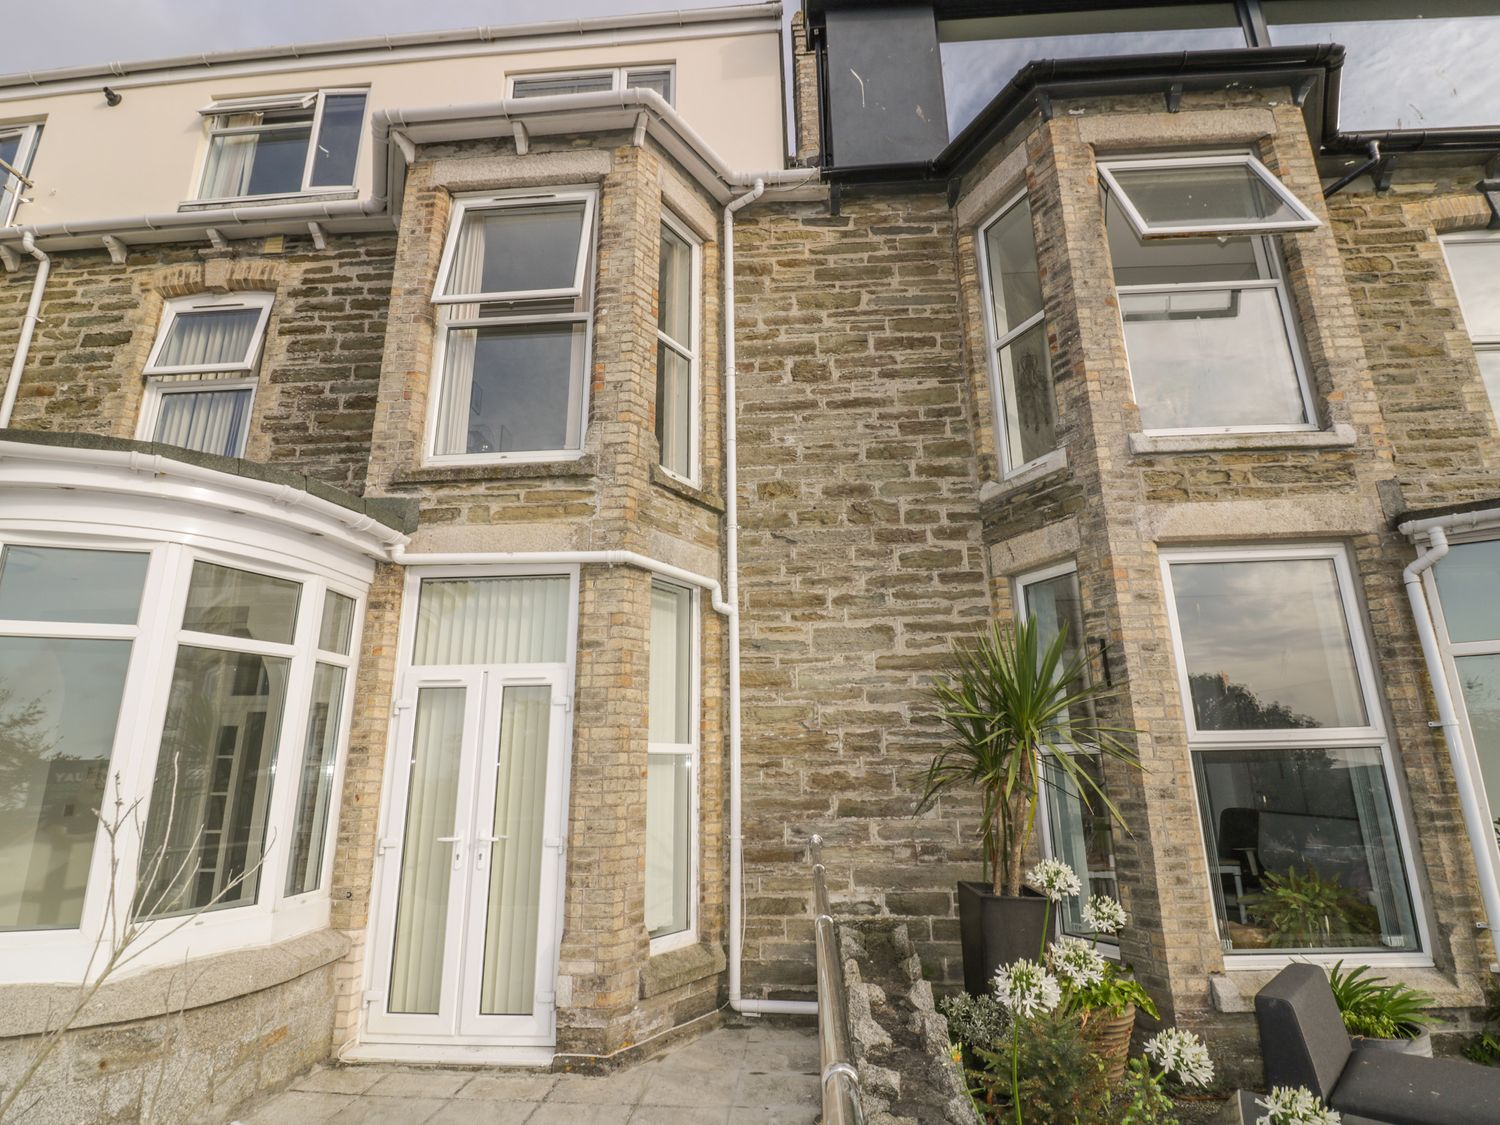 4 St. Georges Apartments in Newquay - sleeps 3 people